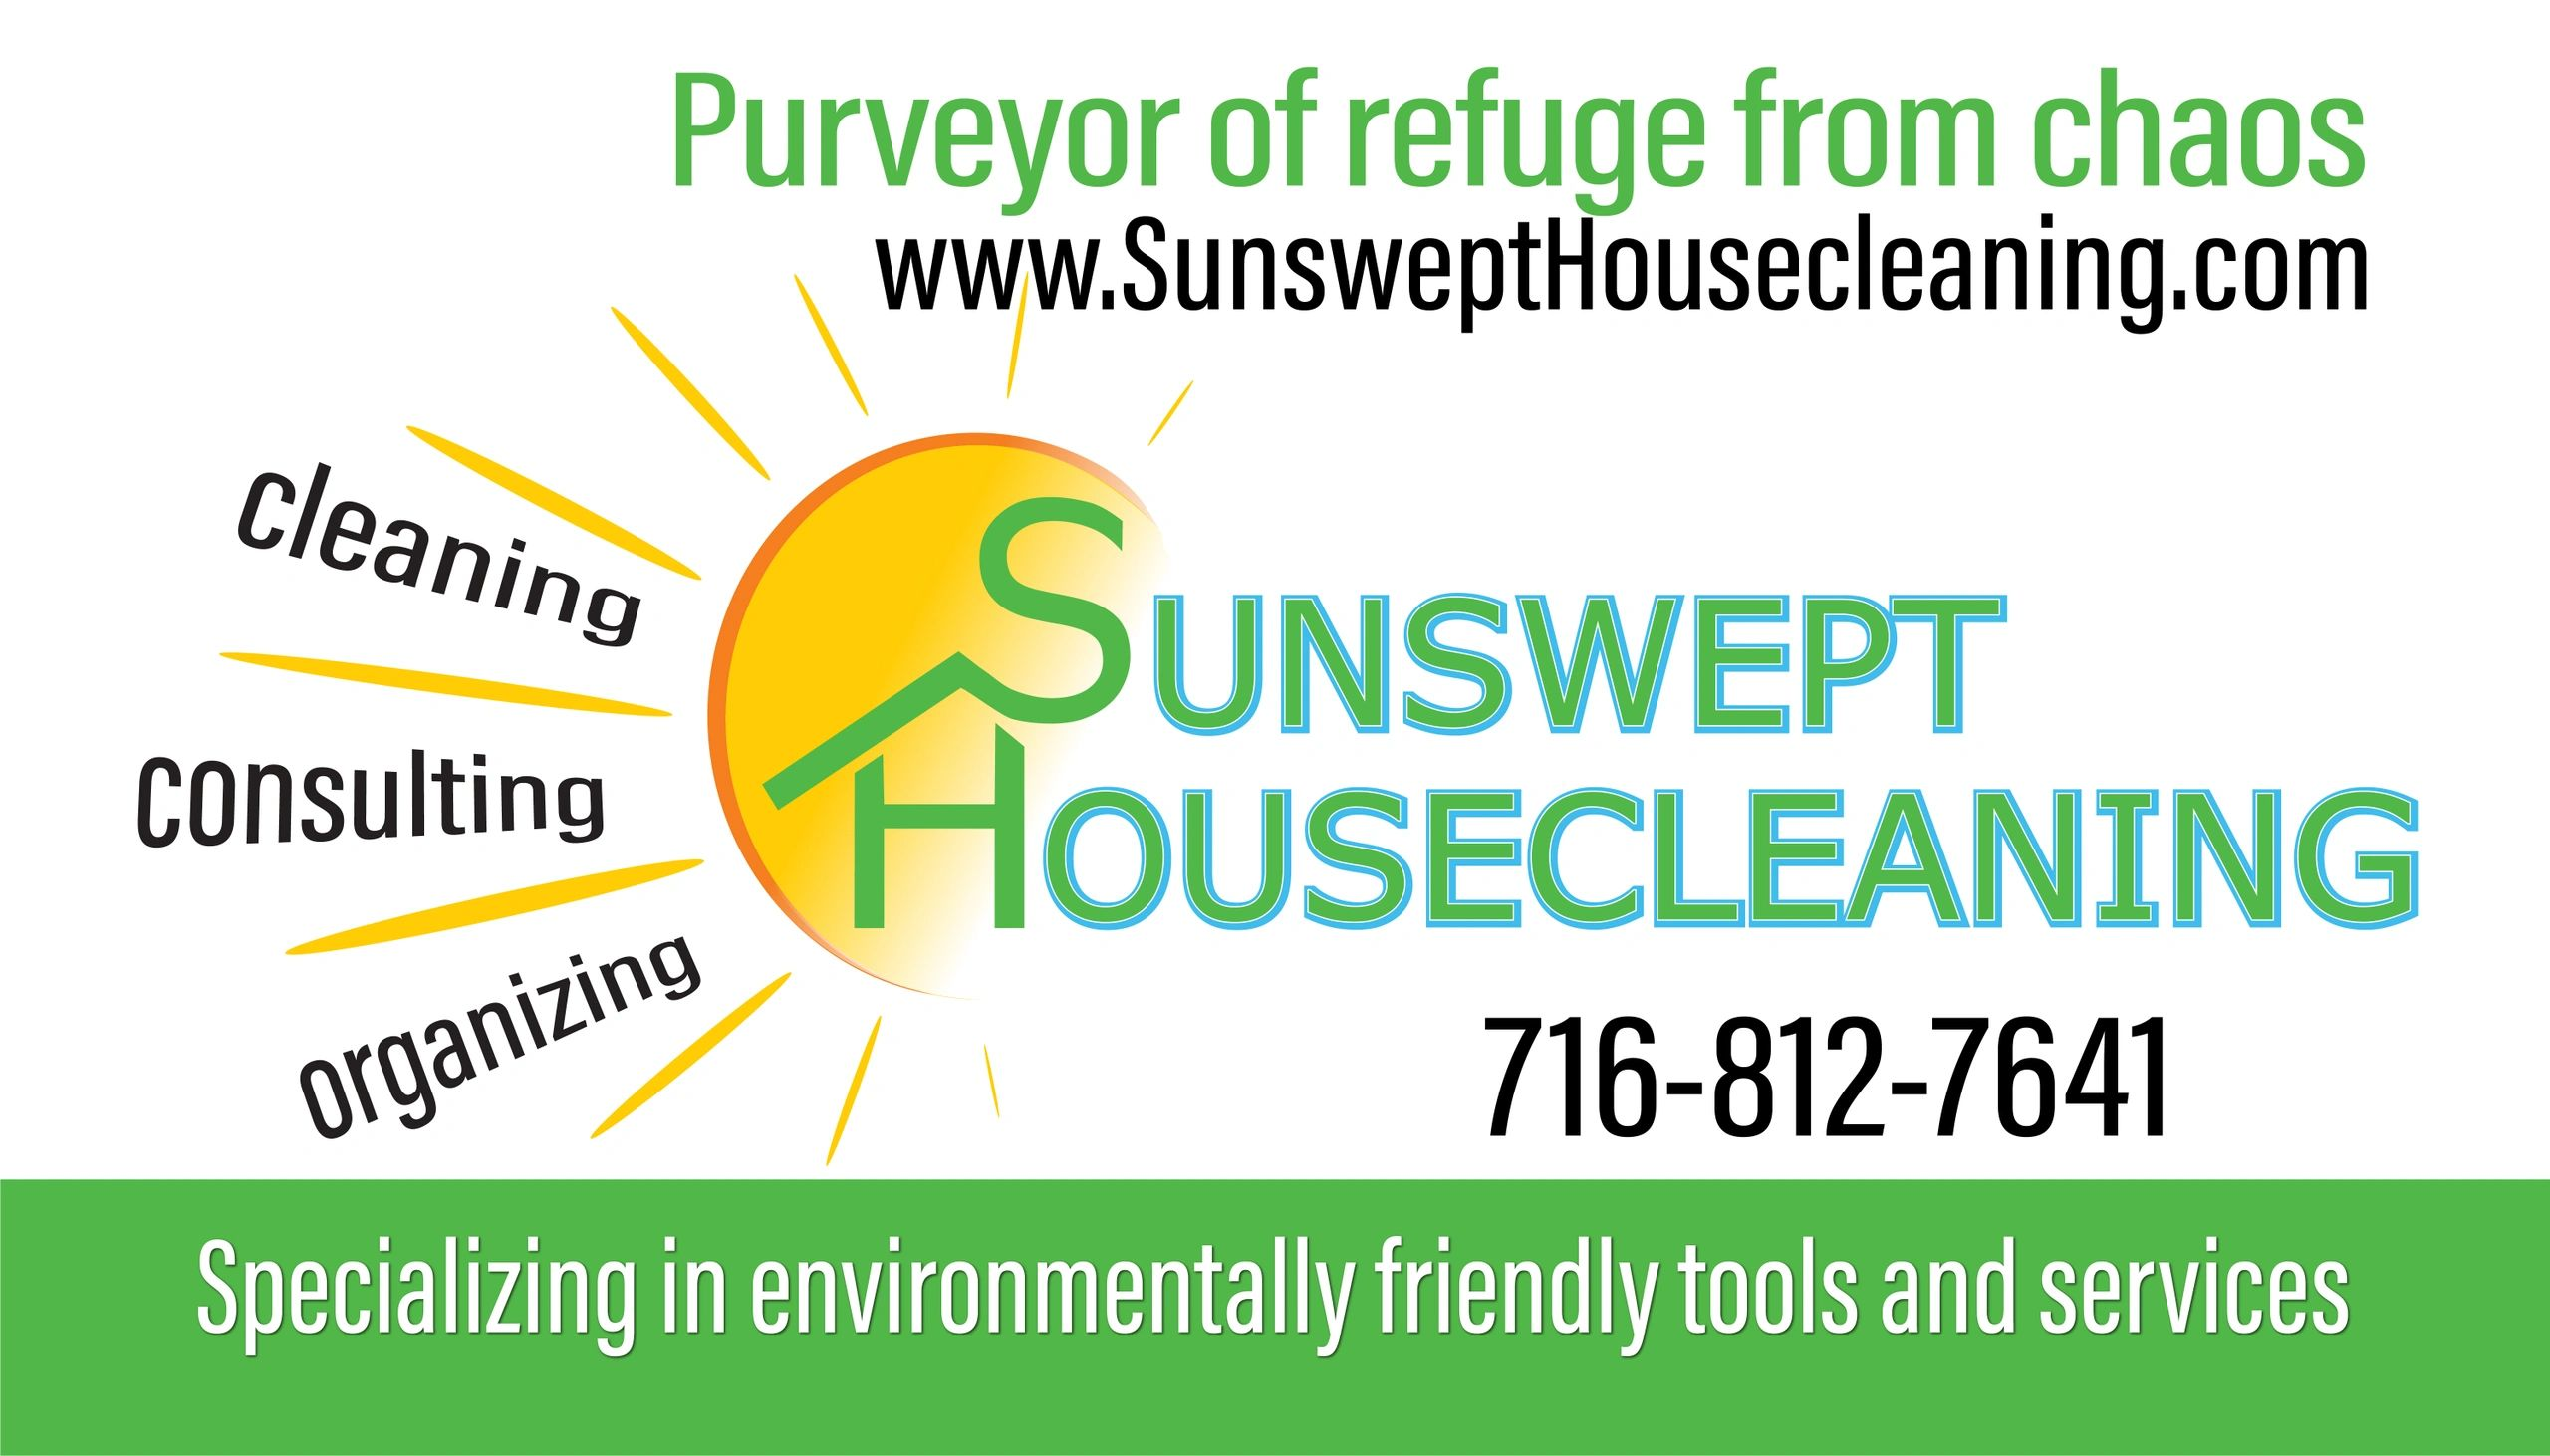 Logo, Description of Services, Contact Info on Business Card for Sunswept Housecleaning